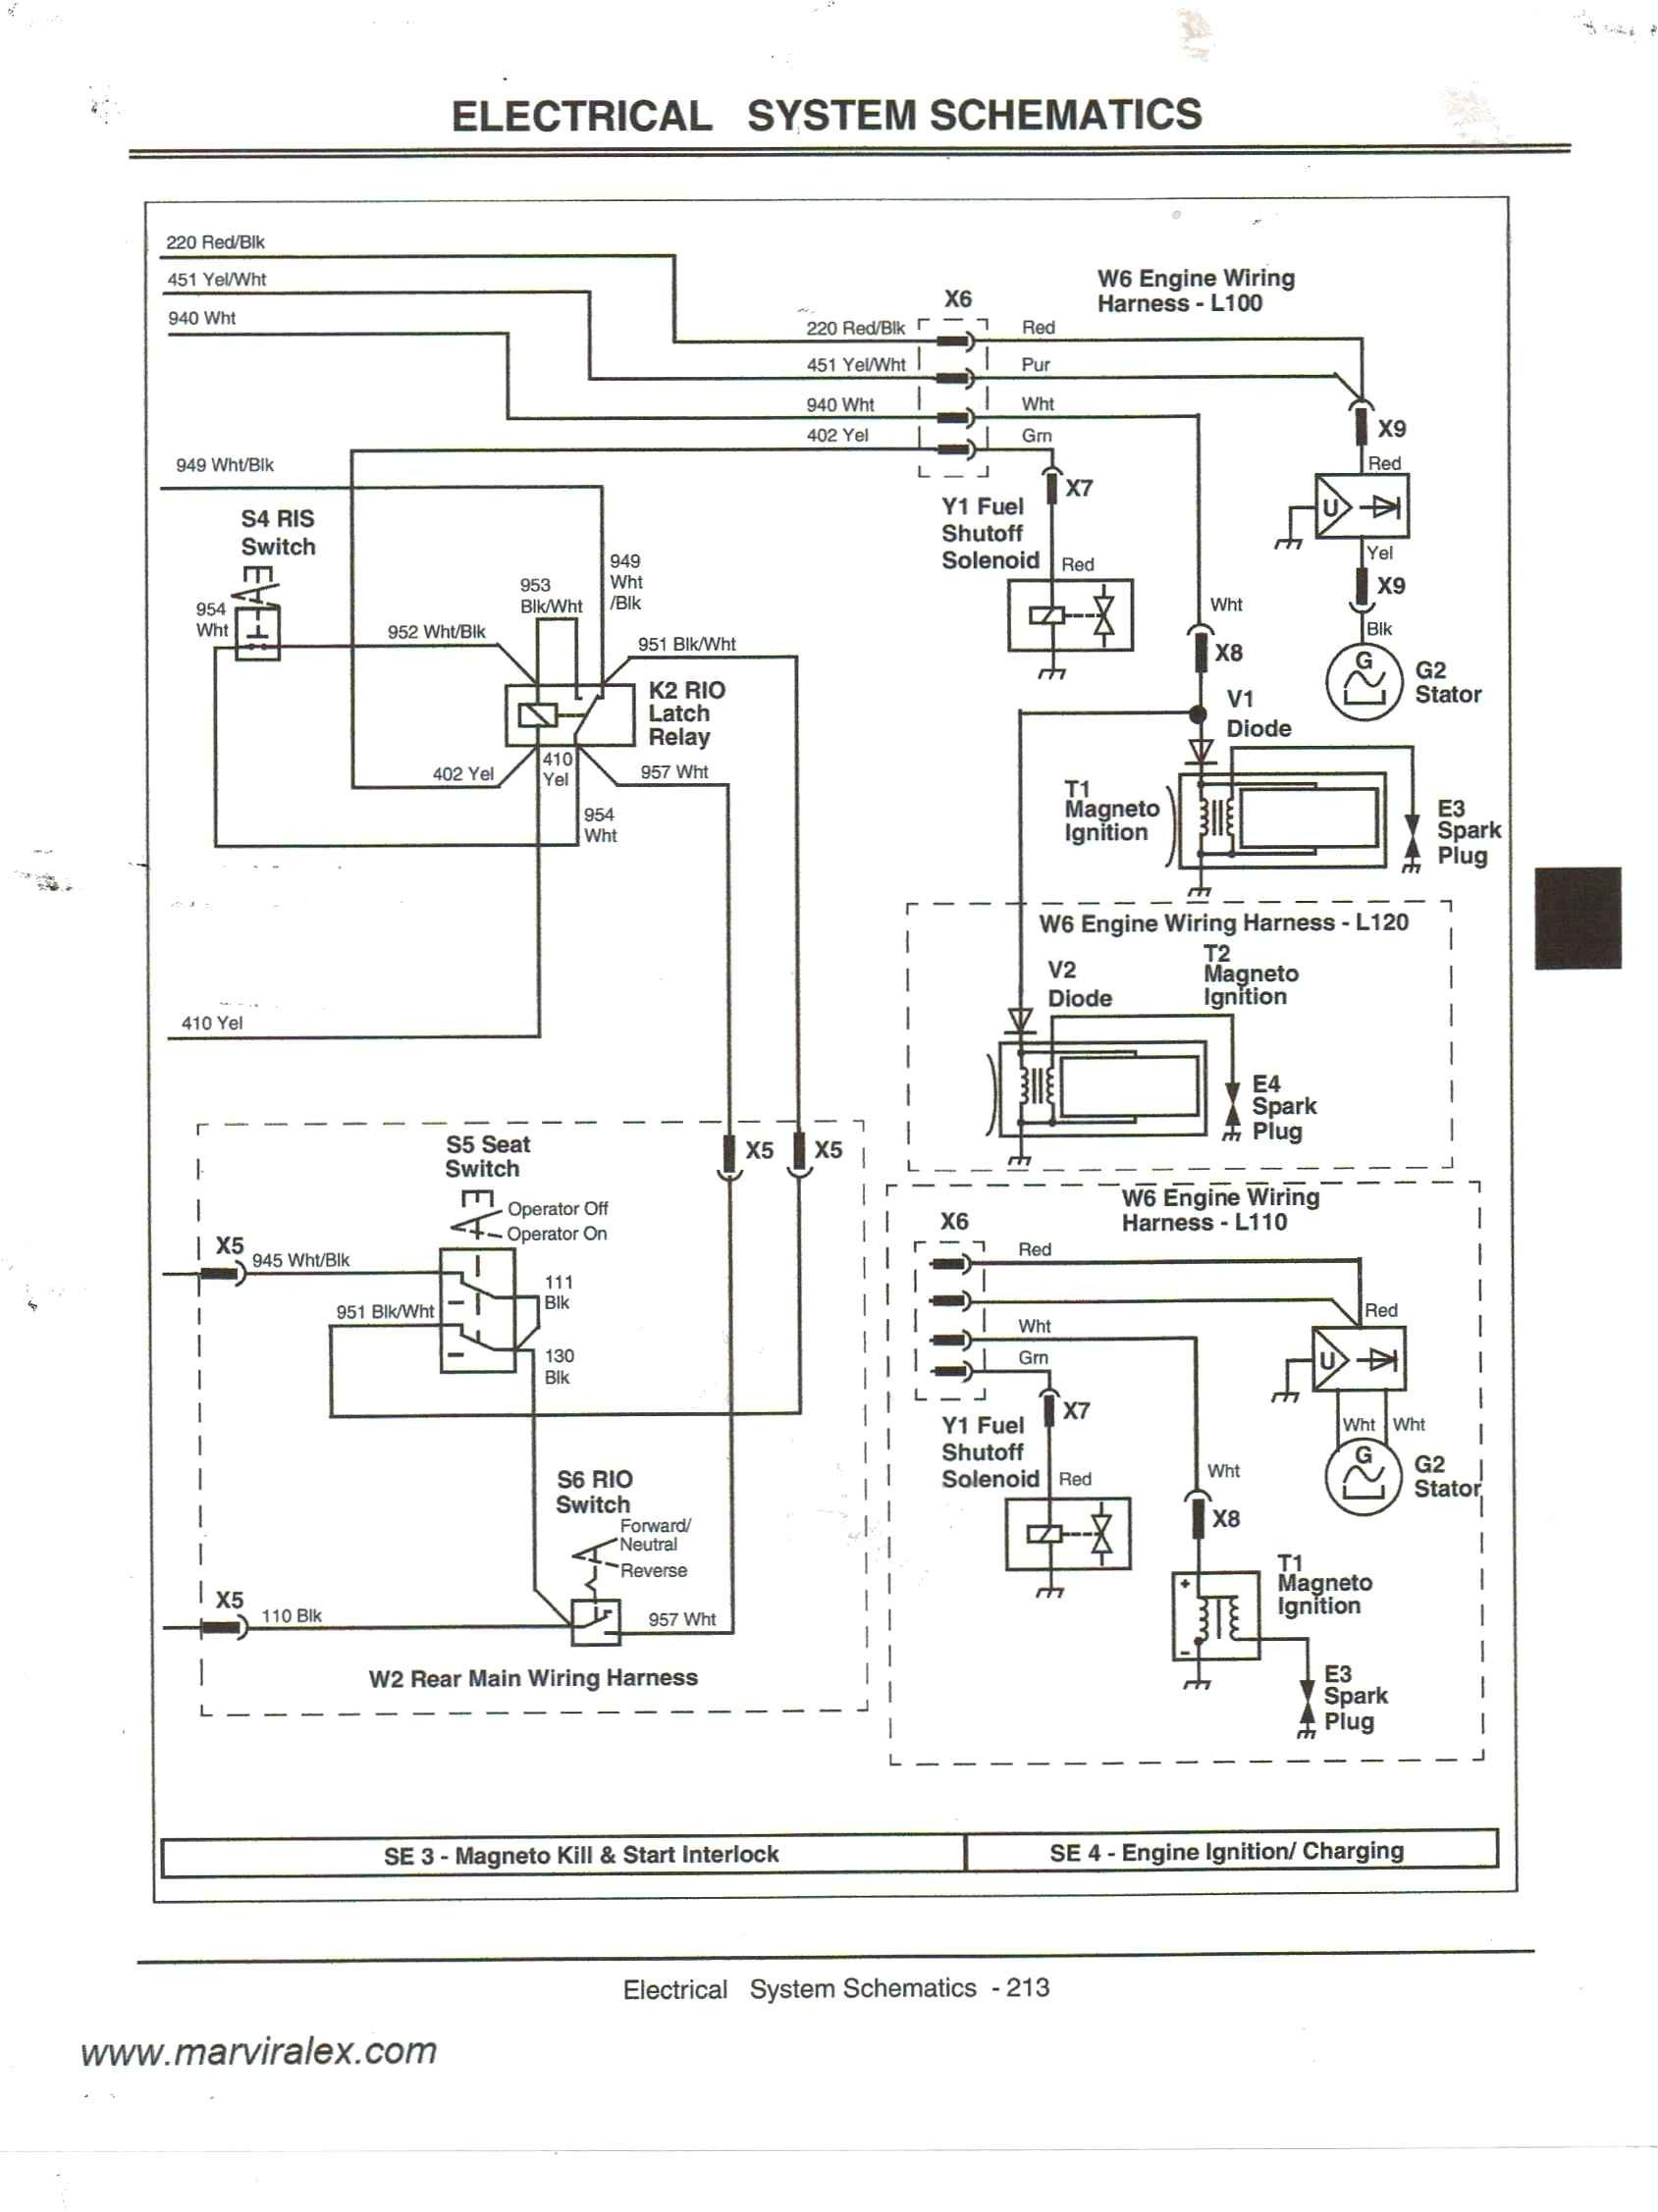 john deere l130 wiring diagram Collection-Wiring Diagram for John Deere 212 Fresh Wiring Diagram for John Deere X300 Refrence John Deere 5-n